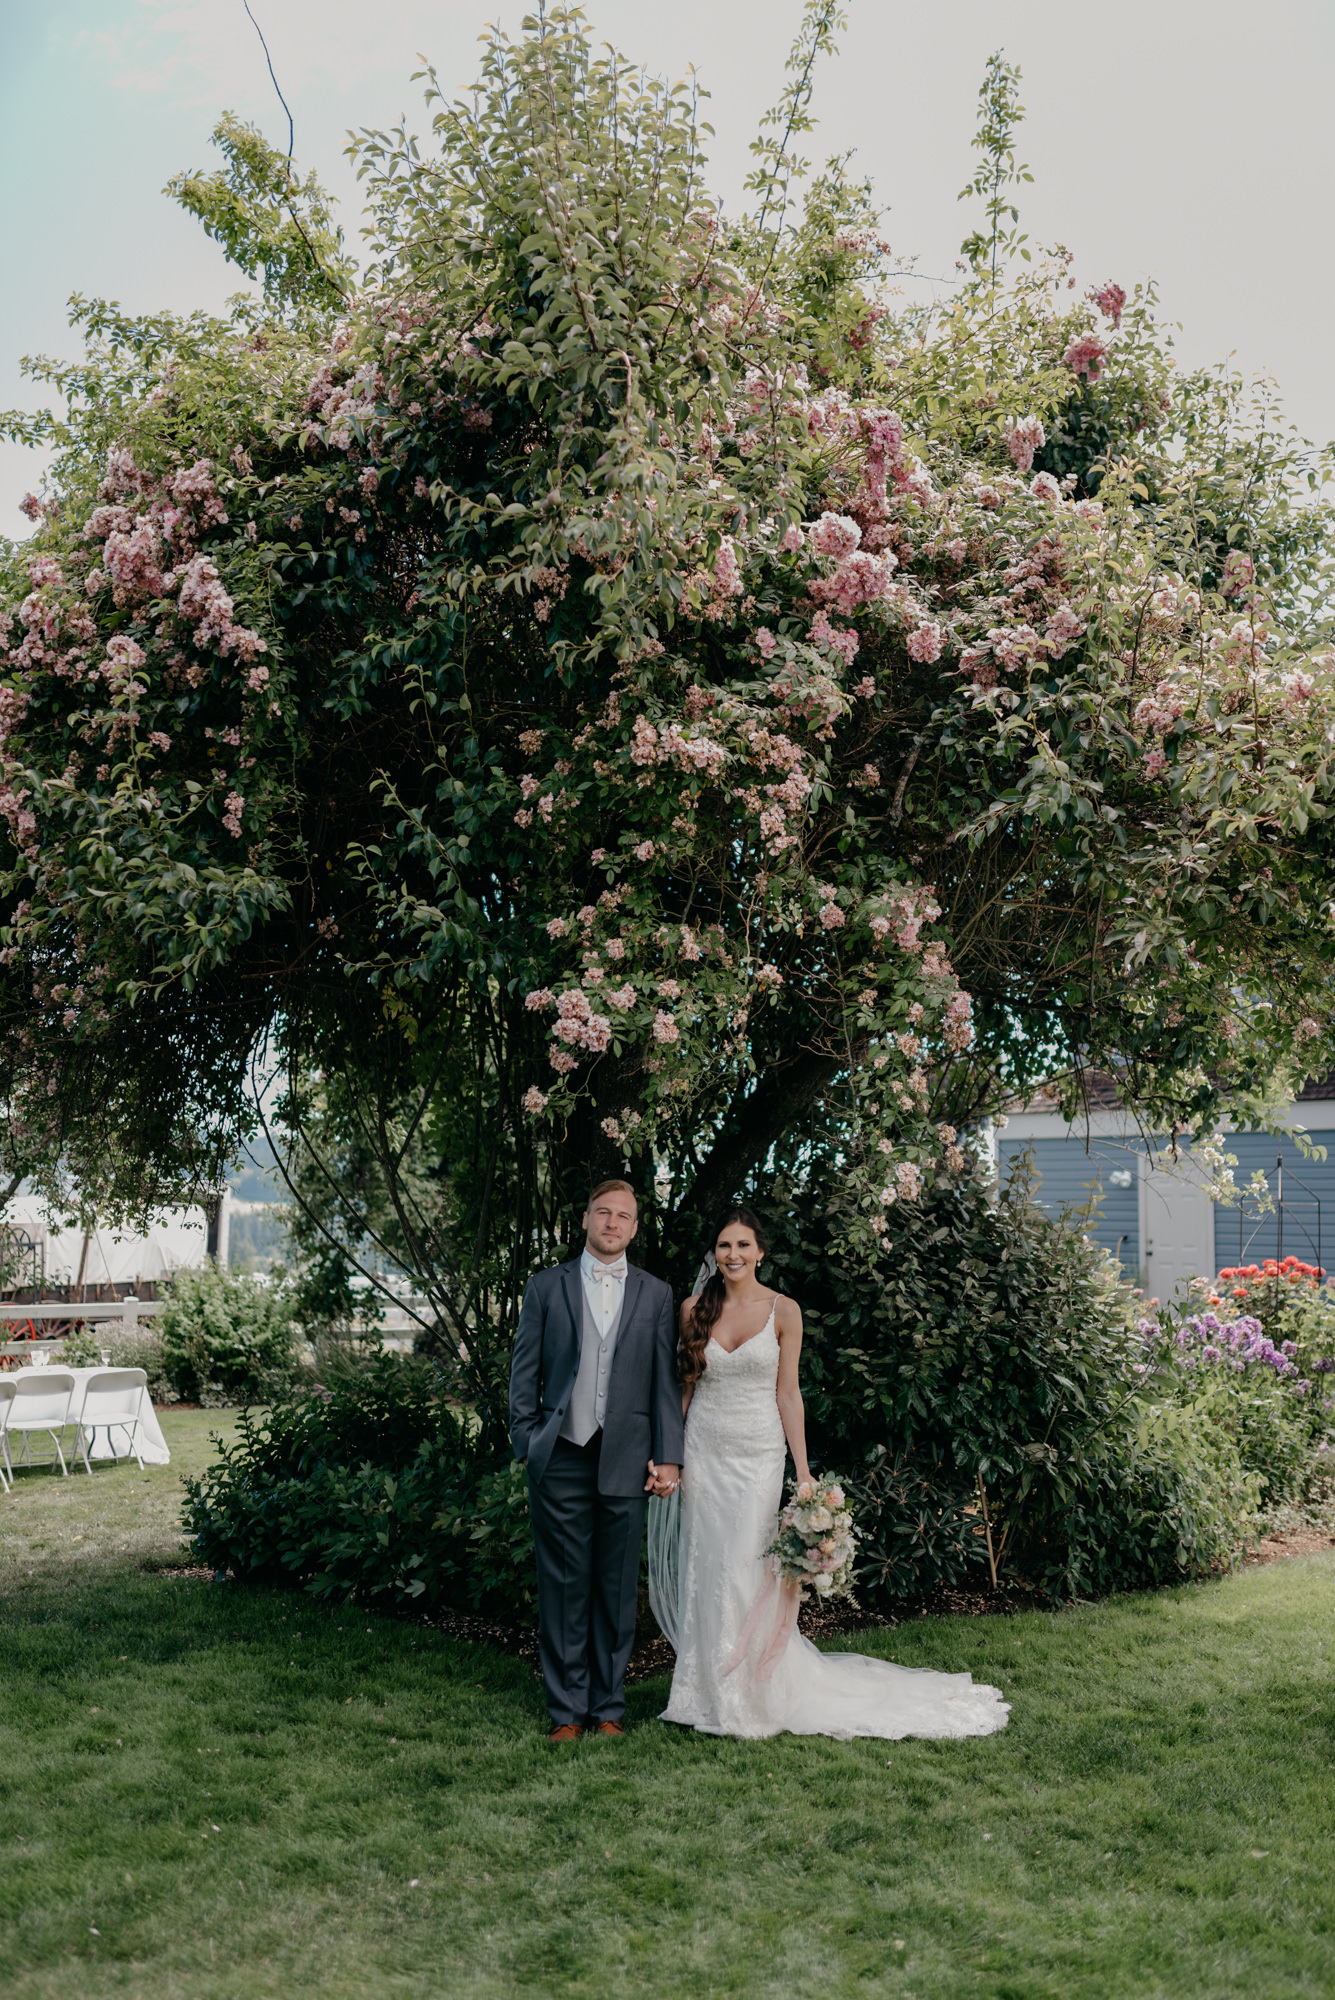 82-lake-oswego-wedding-portland-couple-rose-tree.jpg